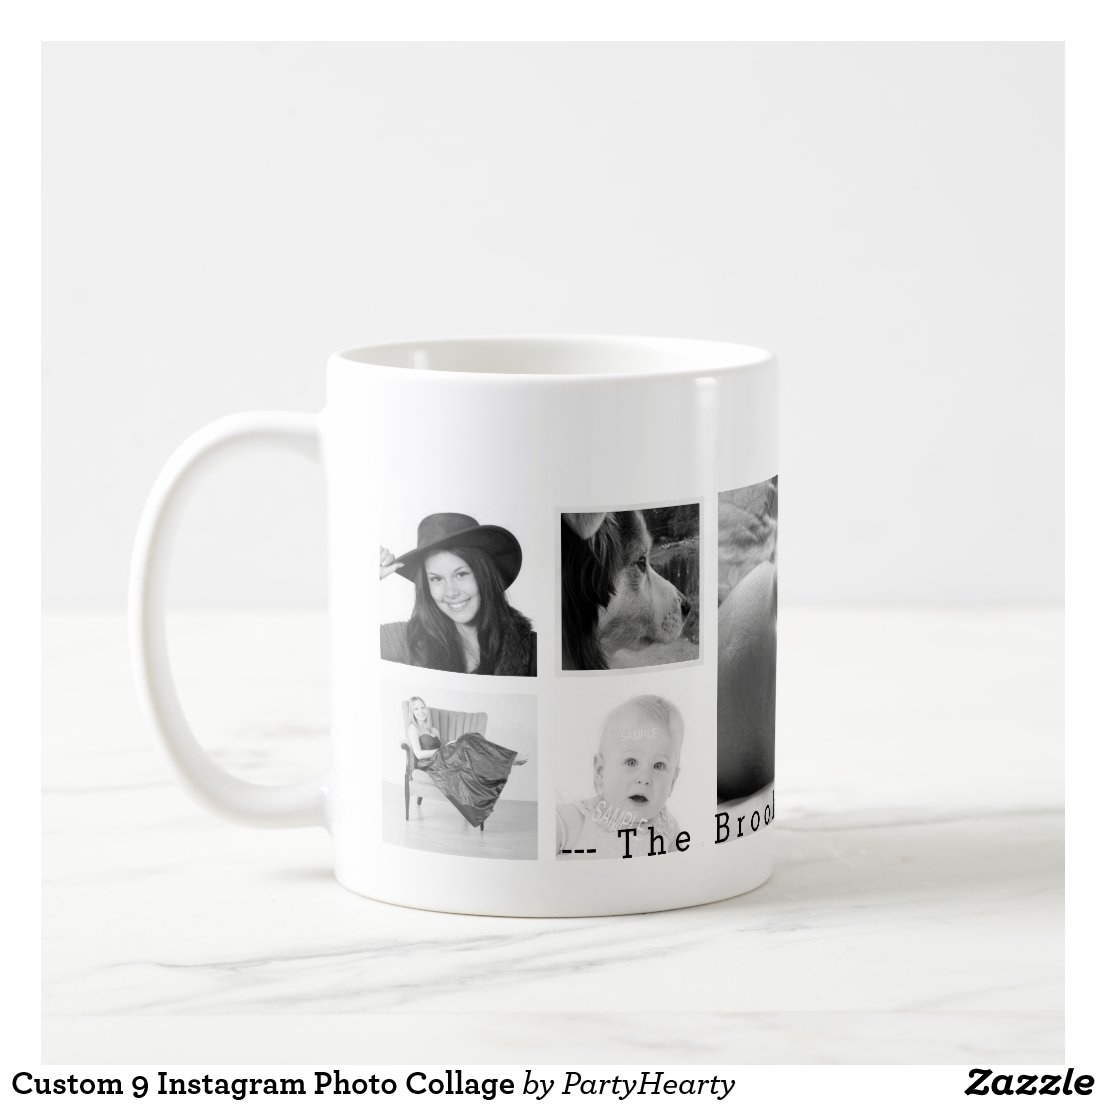 Custom 9 Instagram Photo Collage Mug